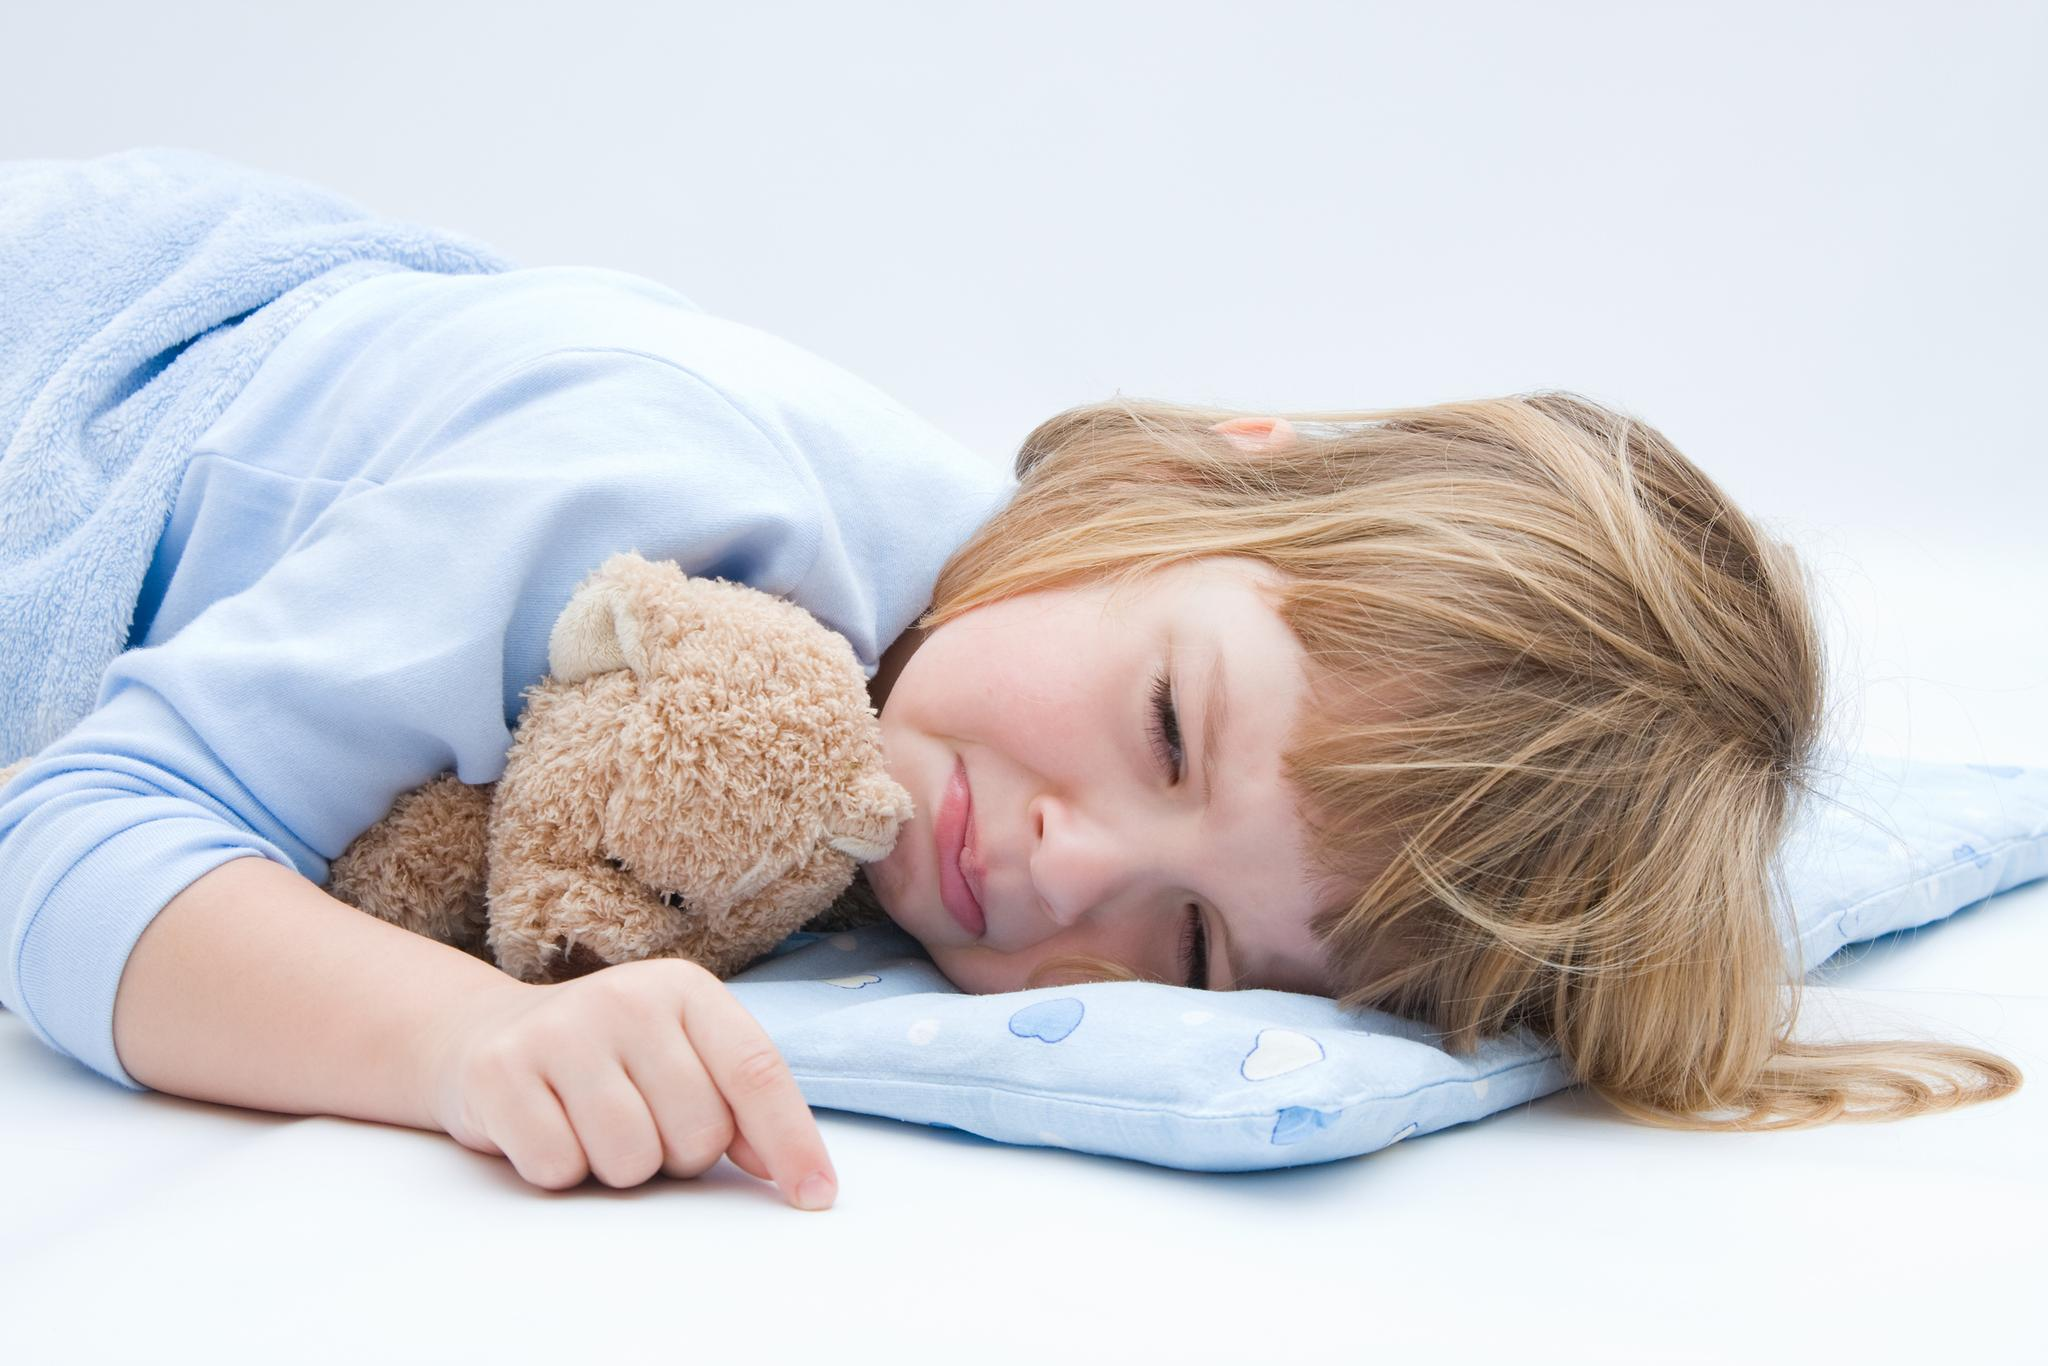 child with teddy bear, sleeping and crying